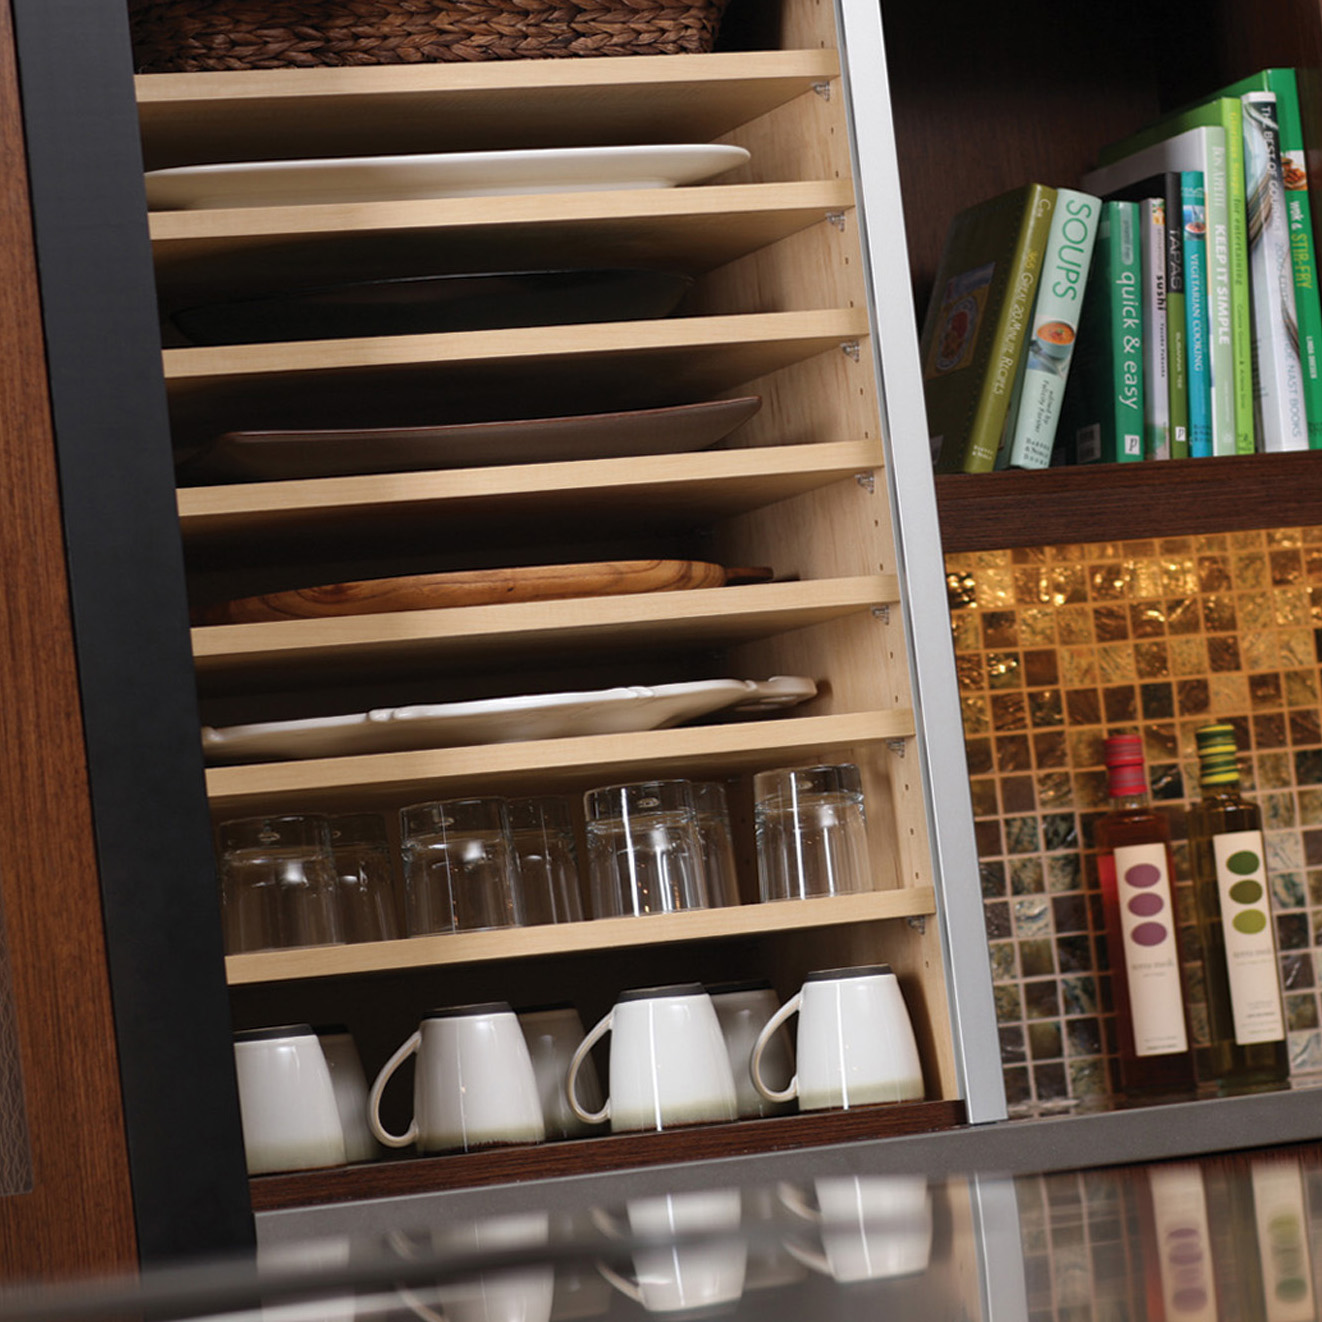 Wall Appliance Cabinet Organized for Tray Storage